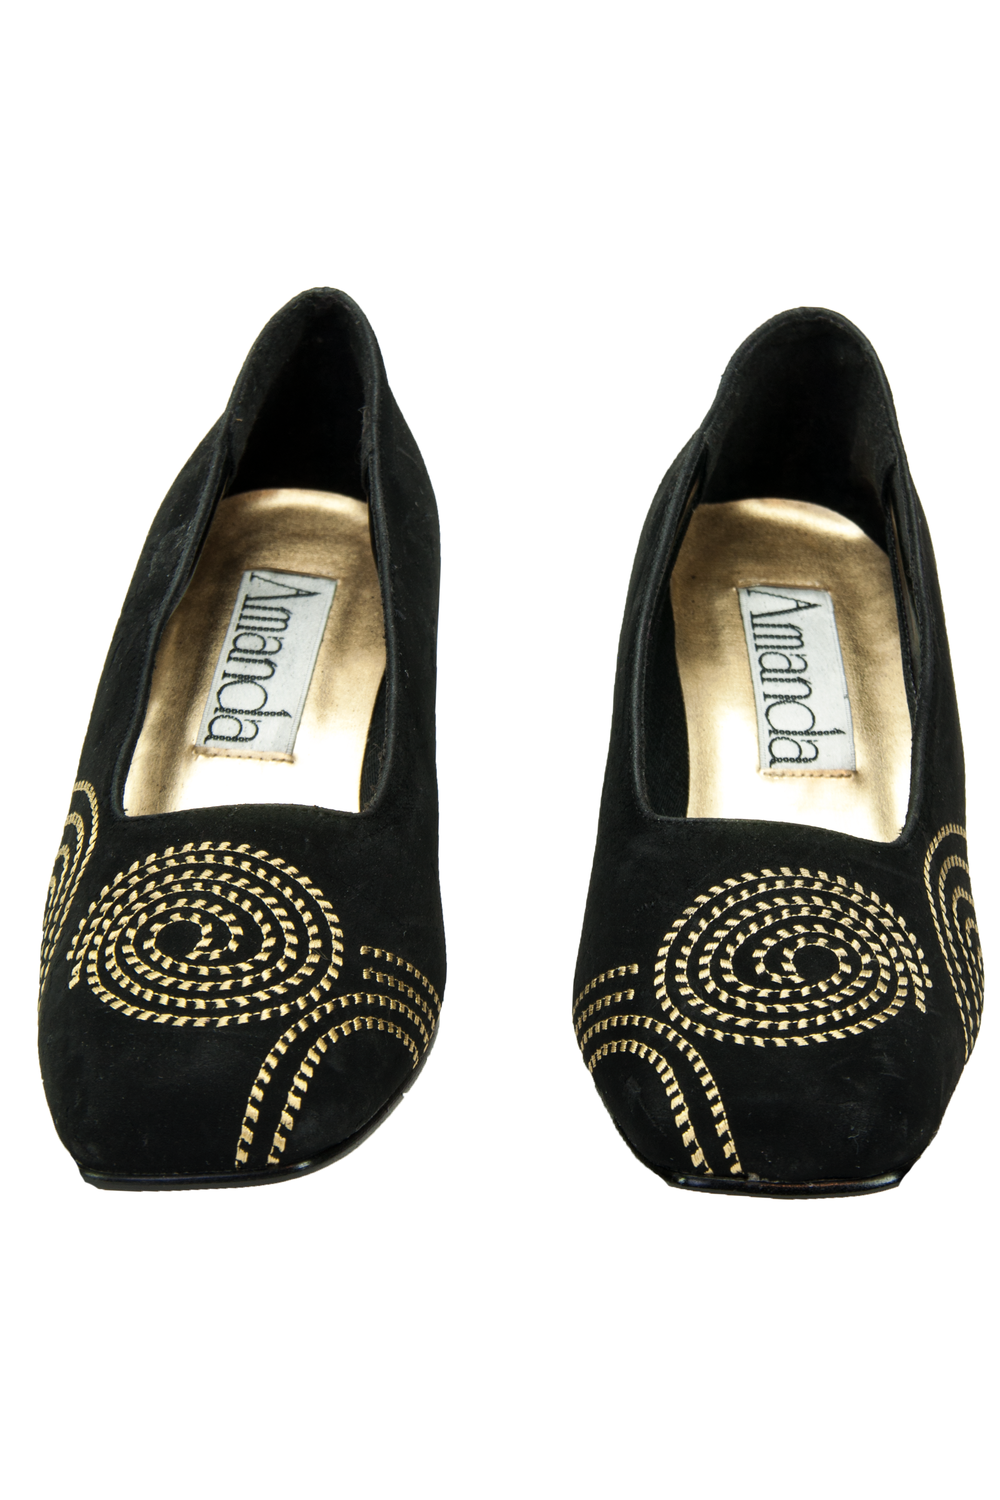 black velvet shoes with gold embroidery